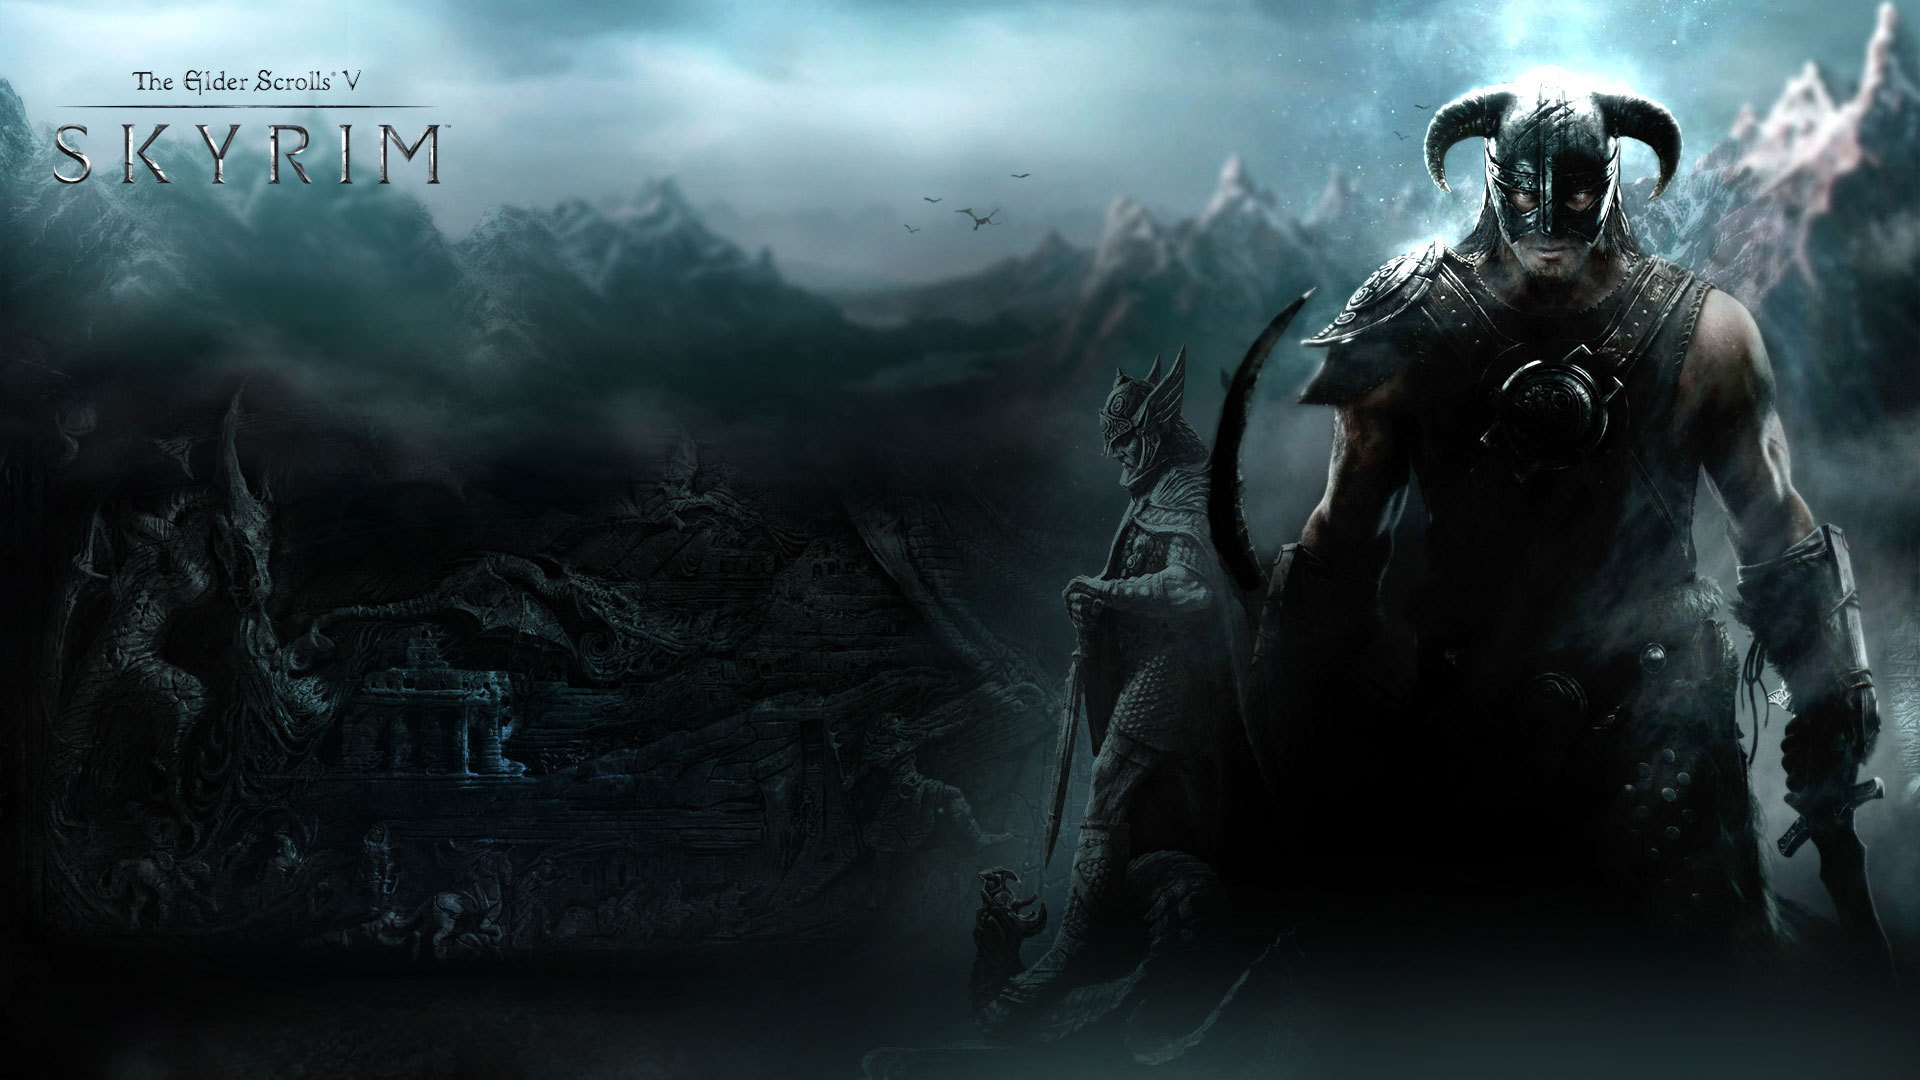 Skyrim Backgrounds